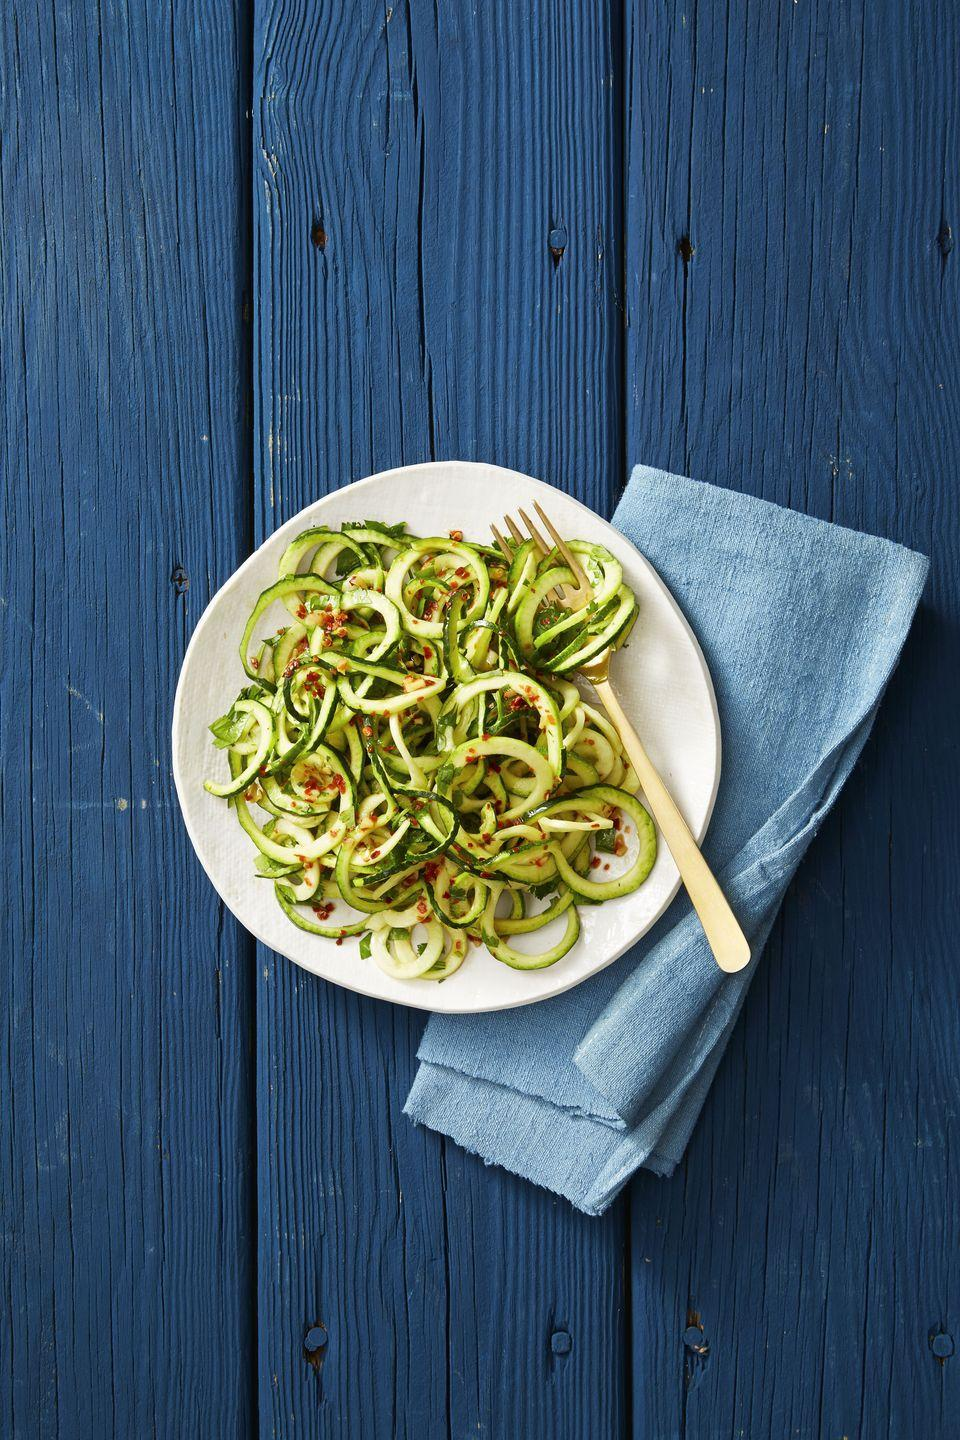 """<p>Transform spiralized zucchini into the vegan """"pasta"""" salad of your dreams by tossing zoodles with sesame oil, vinegar, garlic, cilantro and red pepper flakes.<br></p><p><em><a href=""""https://www.goodhousekeeping.com/food-recipes/a38869/asian-sesame-zucchini-noodles-recipe/"""" rel=""""nofollow noopener"""" target=""""_blank"""" data-ylk=""""slk:Get the recipe for Asian Sesame Zucchini Noodles »"""" class=""""link rapid-noclick-resp"""">Get the recipe for Asian Sesame Zucchini Noodles »</a></em></p><p><strong>RELATED: </strong><a href=""""https://www.goodhousekeeping.com/food-recipes/g562/zucchini-recipes/"""" rel=""""nofollow noopener"""" target=""""_blank"""" data-ylk=""""slk:40 Healthy and Delicious Zucchini Recipes"""" class=""""link rapid-noclick-resp"""">40 Healthy and Delicious Zucchini Recipes</a></p>"""